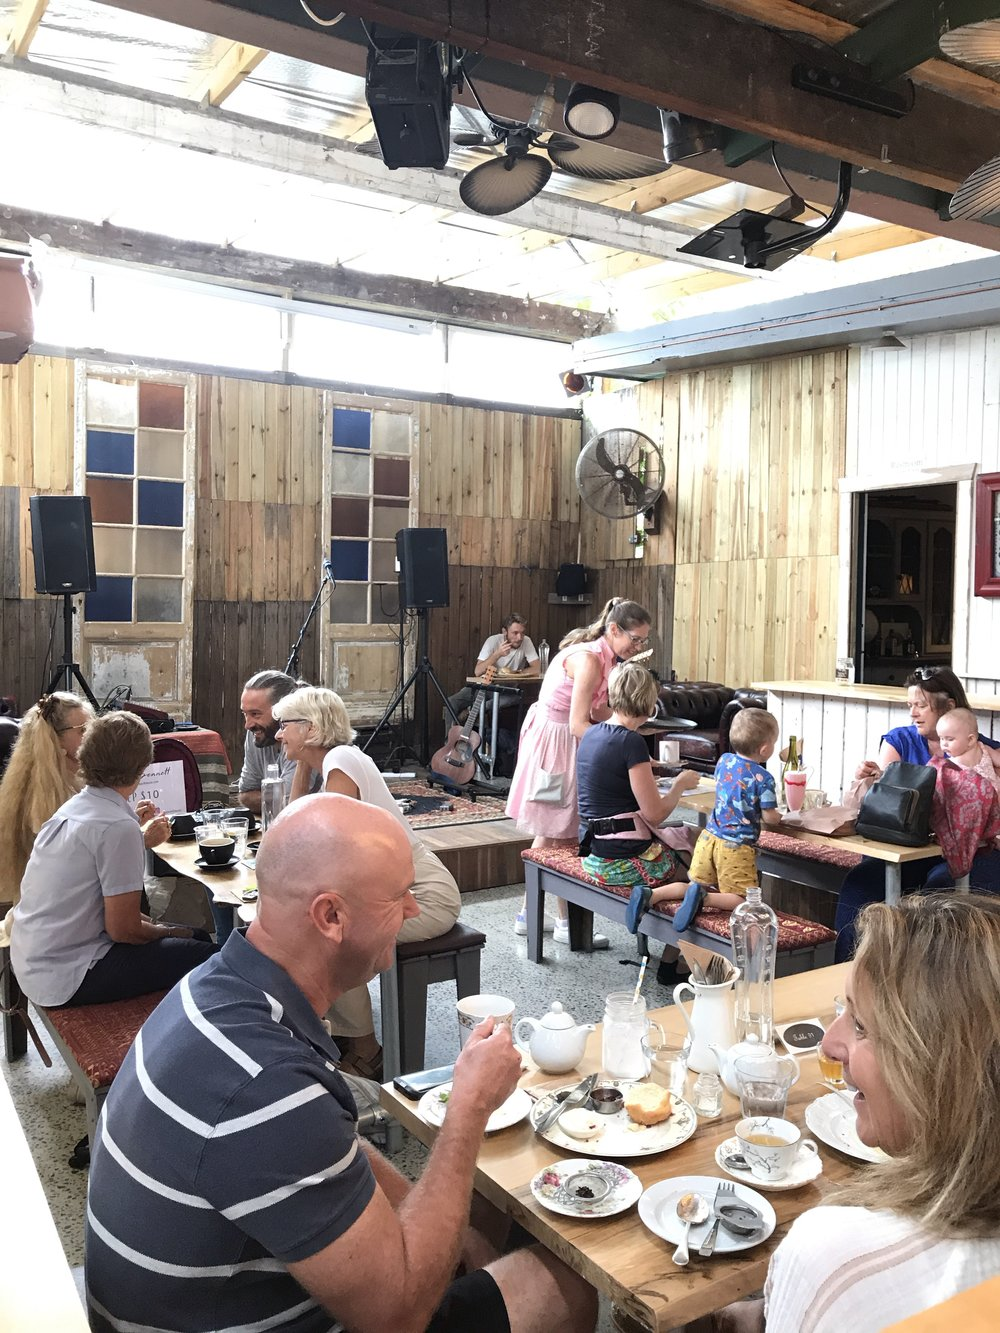 Live music on stage every Sunday Brunch between 10am and 2pm…